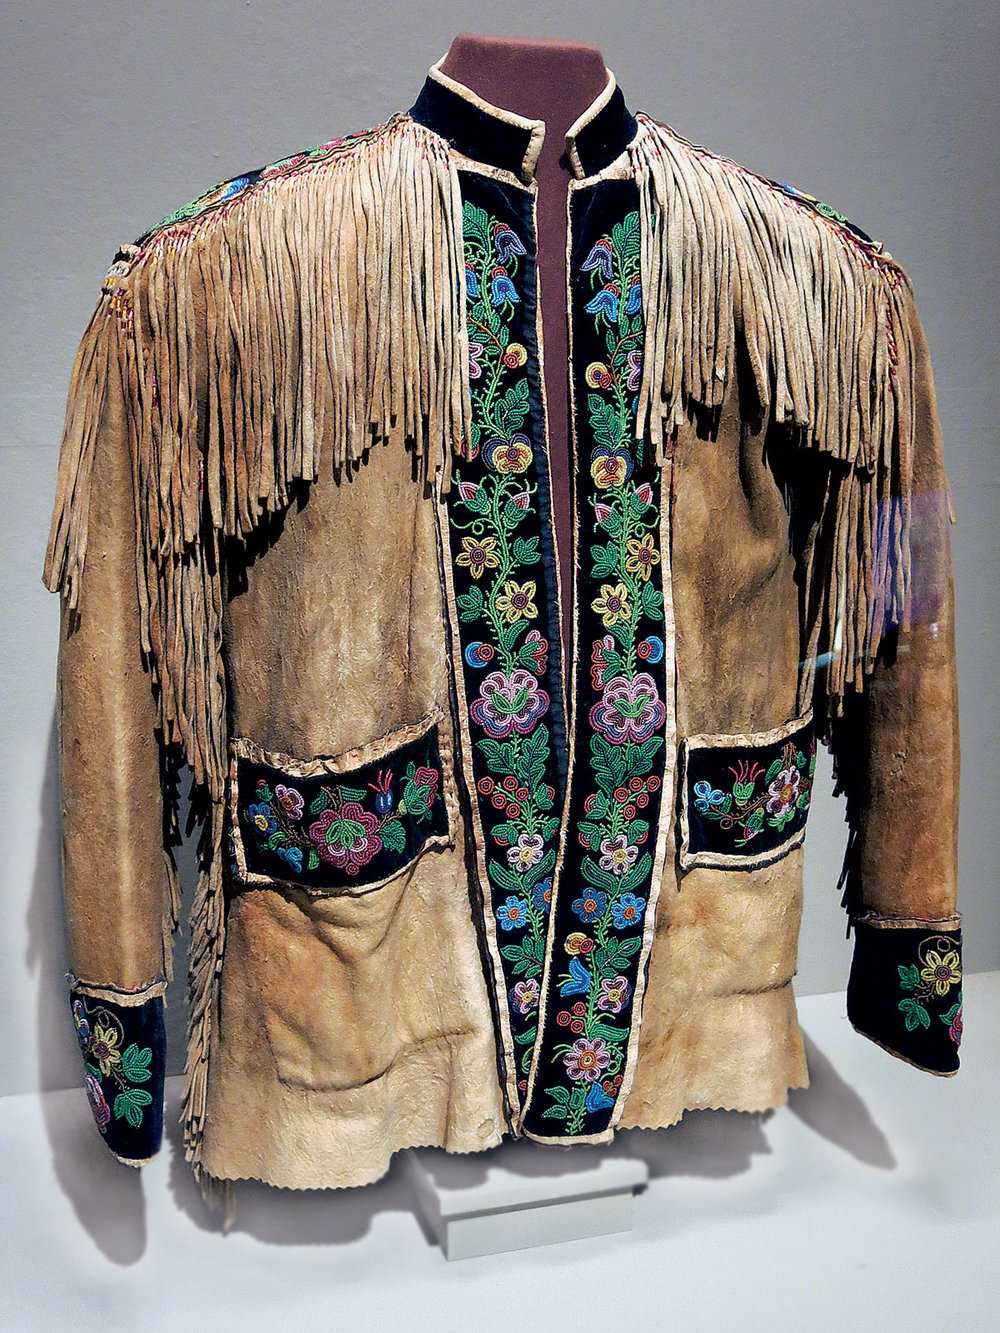 MÉTIS CREE COAT, 76.2 x 71.1 centimeters, circa 1900. Although the cut of this coat suggests that it was made during the late nineteenth century, it is possible that the beadwork is earlier and has been repurposed from another garment.  Private collection. Photograph by Ornament.